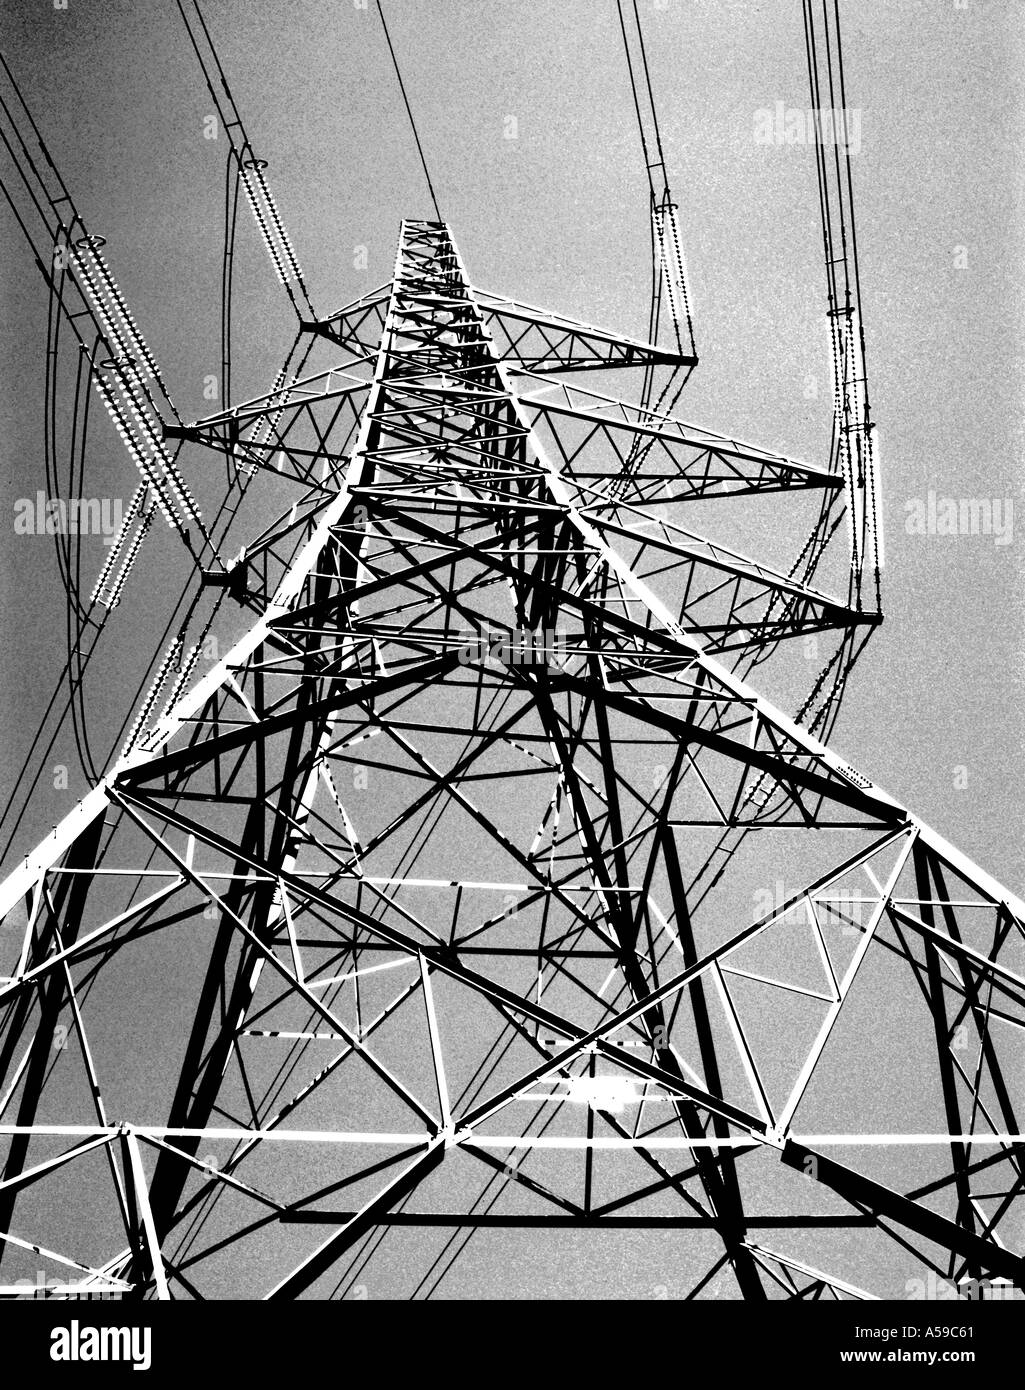 Monochrome study of steel lattice frame structure of a National Grid high  voltage electricity pylon, UK